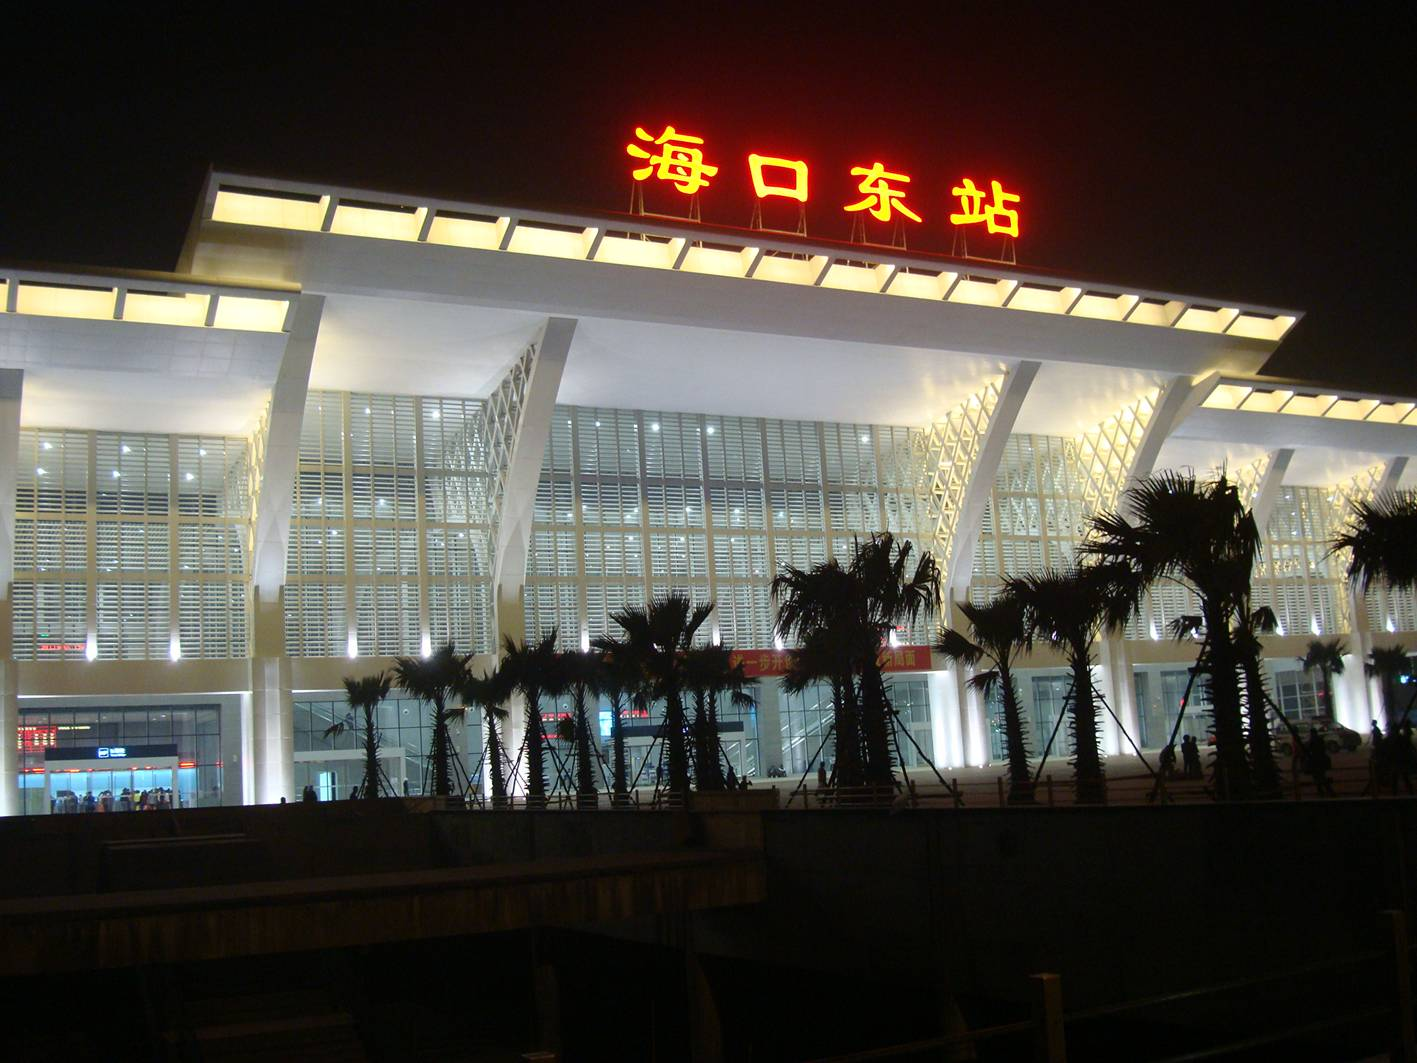 Picture:  The new Haikou train station looks beautiful at night.  Hainan Island, China